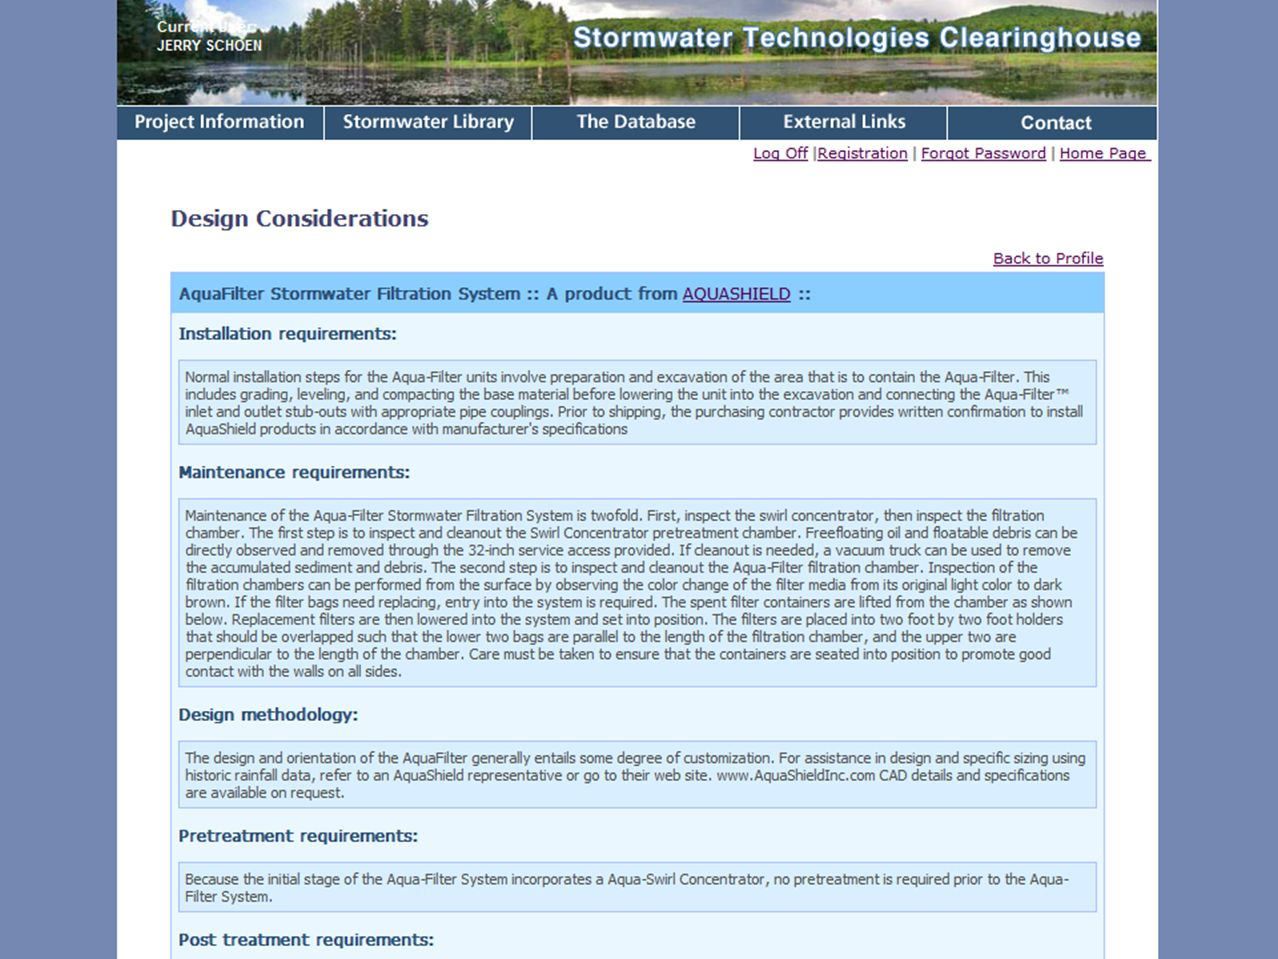 Design Consideration page contains information on installation and maintenance requirements, sizing considerations, etc.